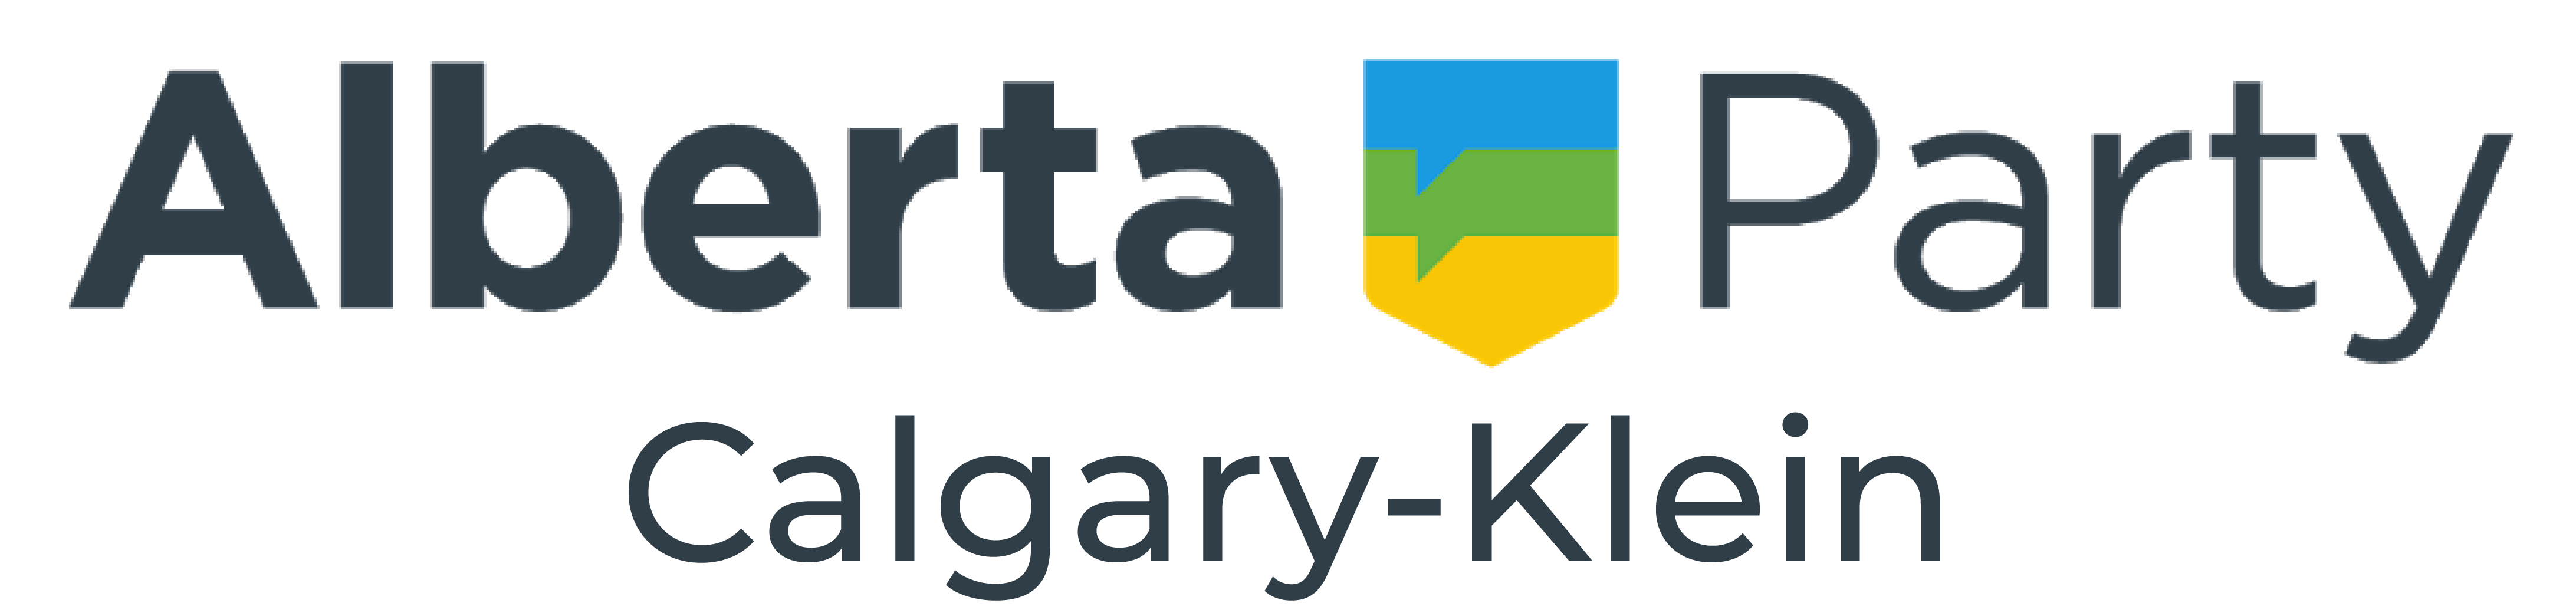 Alberta Party | Calgary-Klein